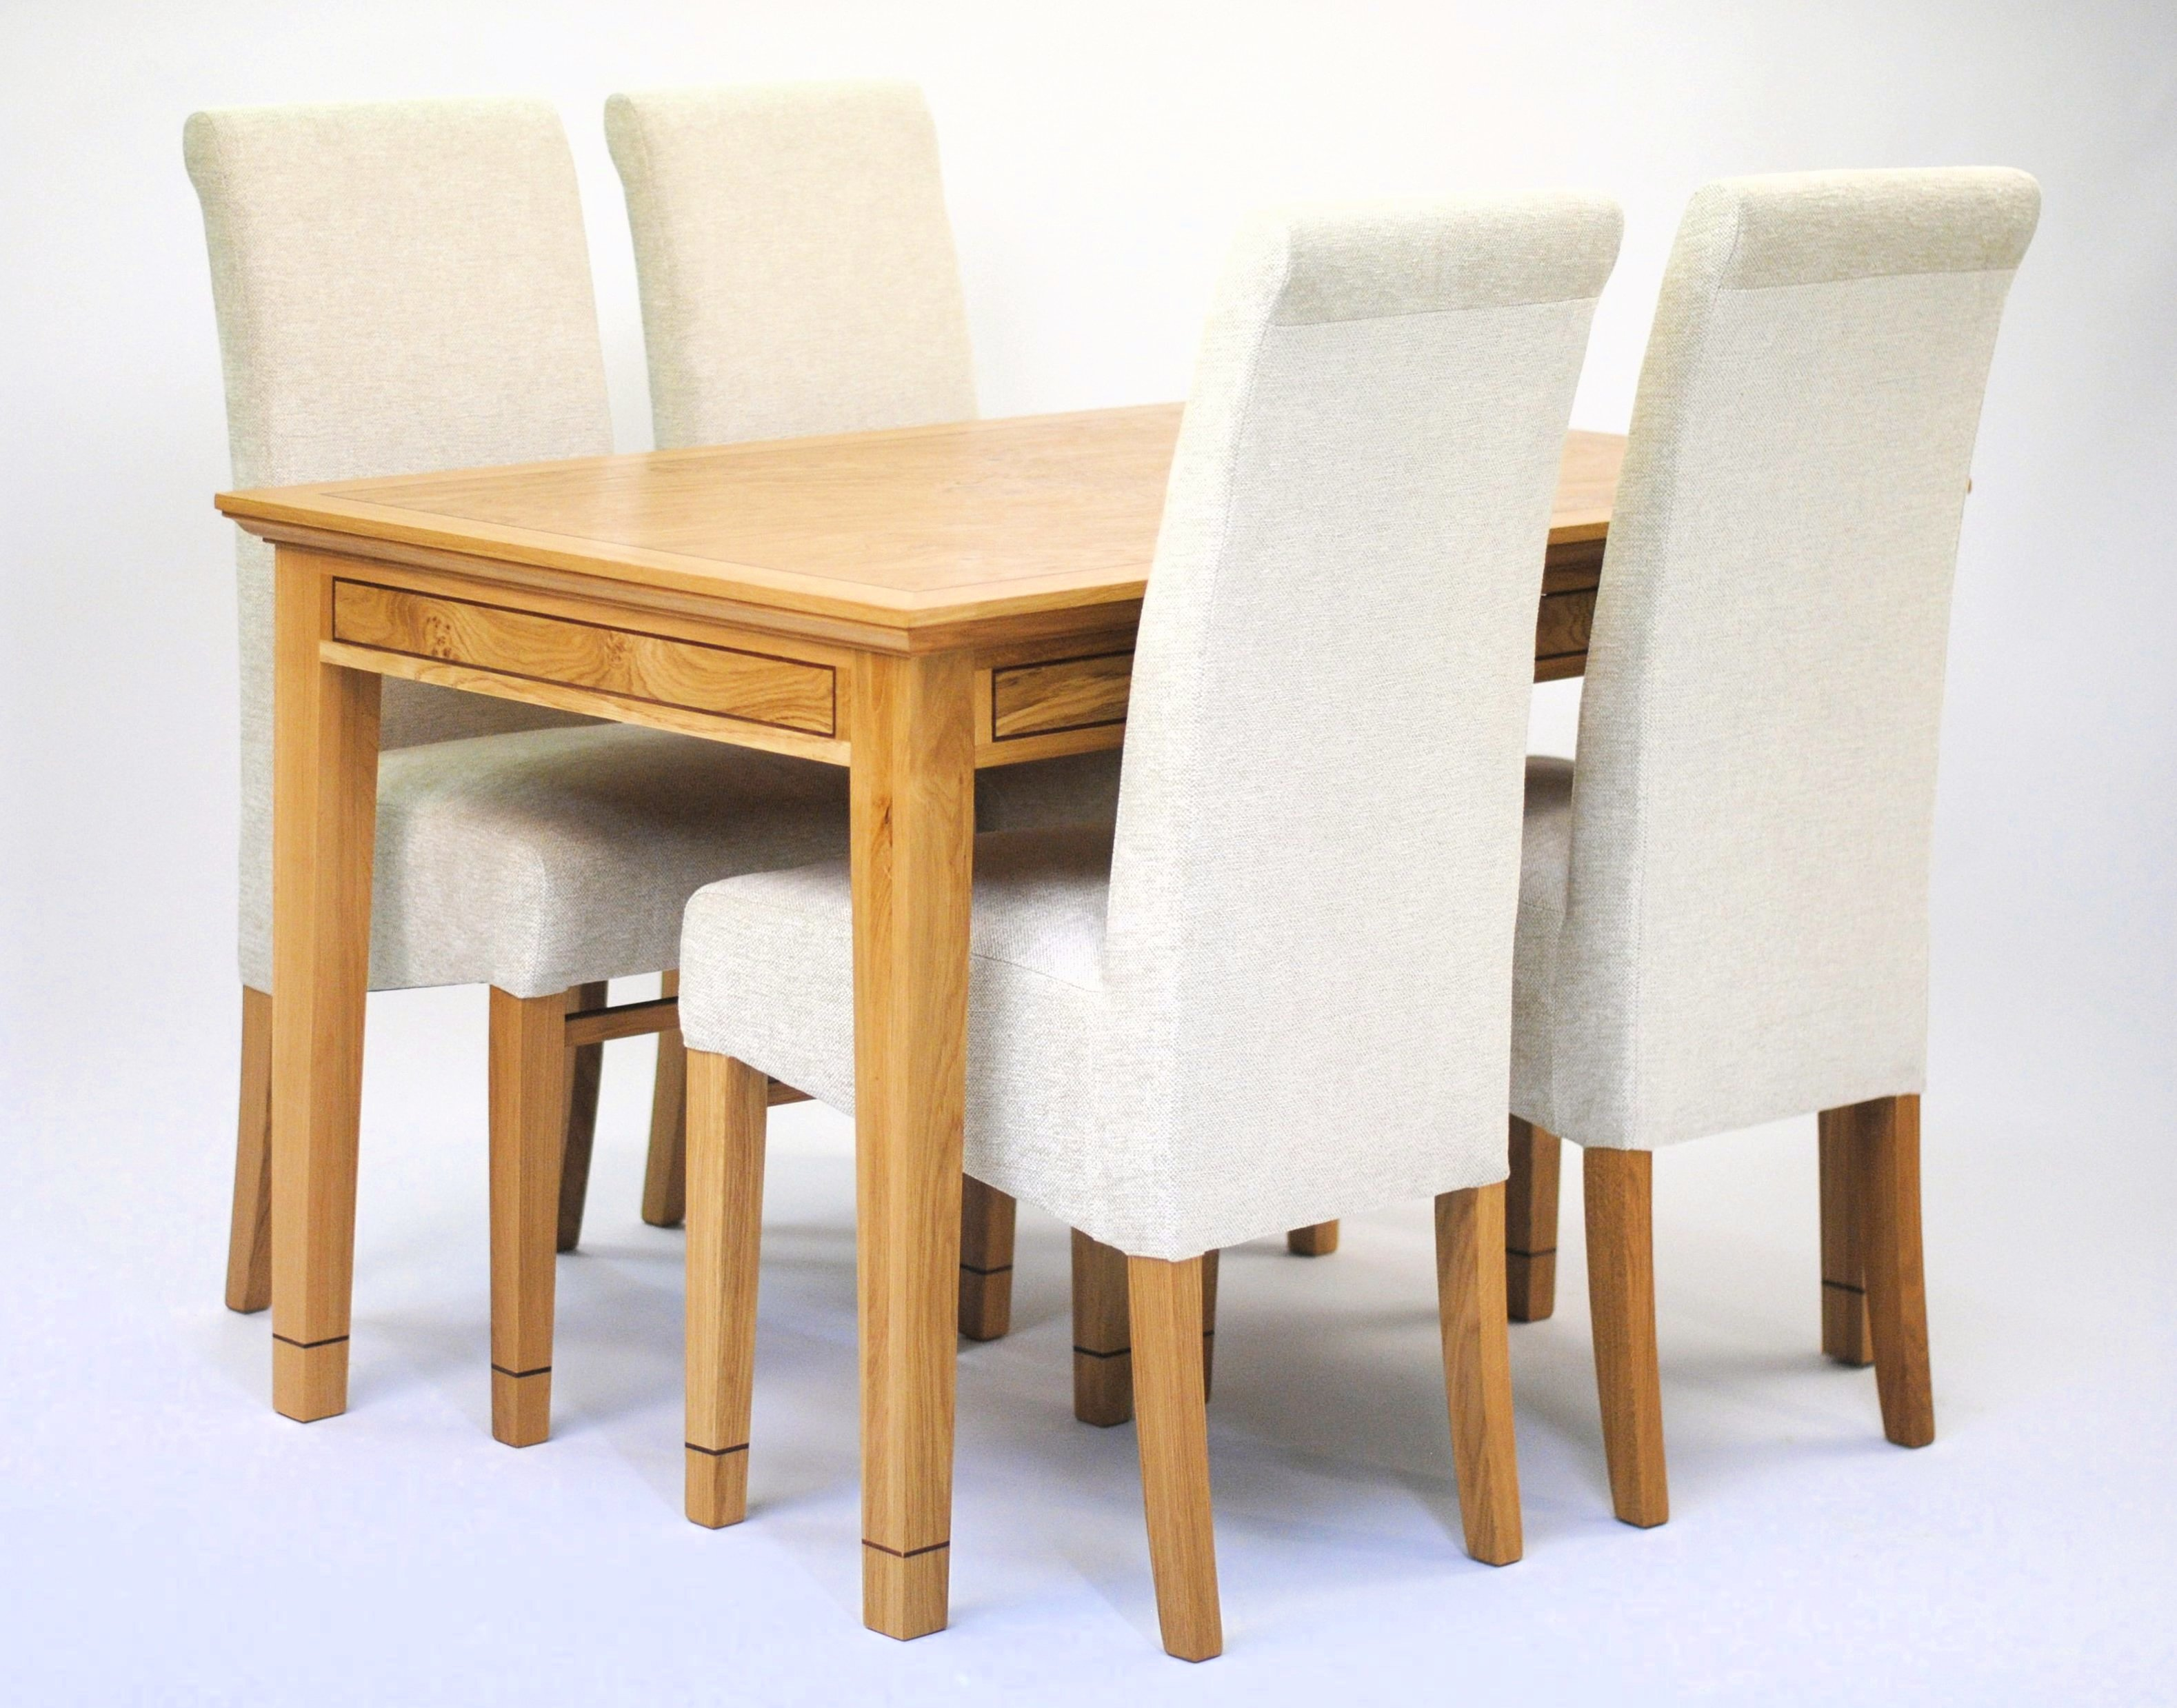 Oak Dining Table Chairs Tanner Furniture Designs - Small dining room table with 4 chairs